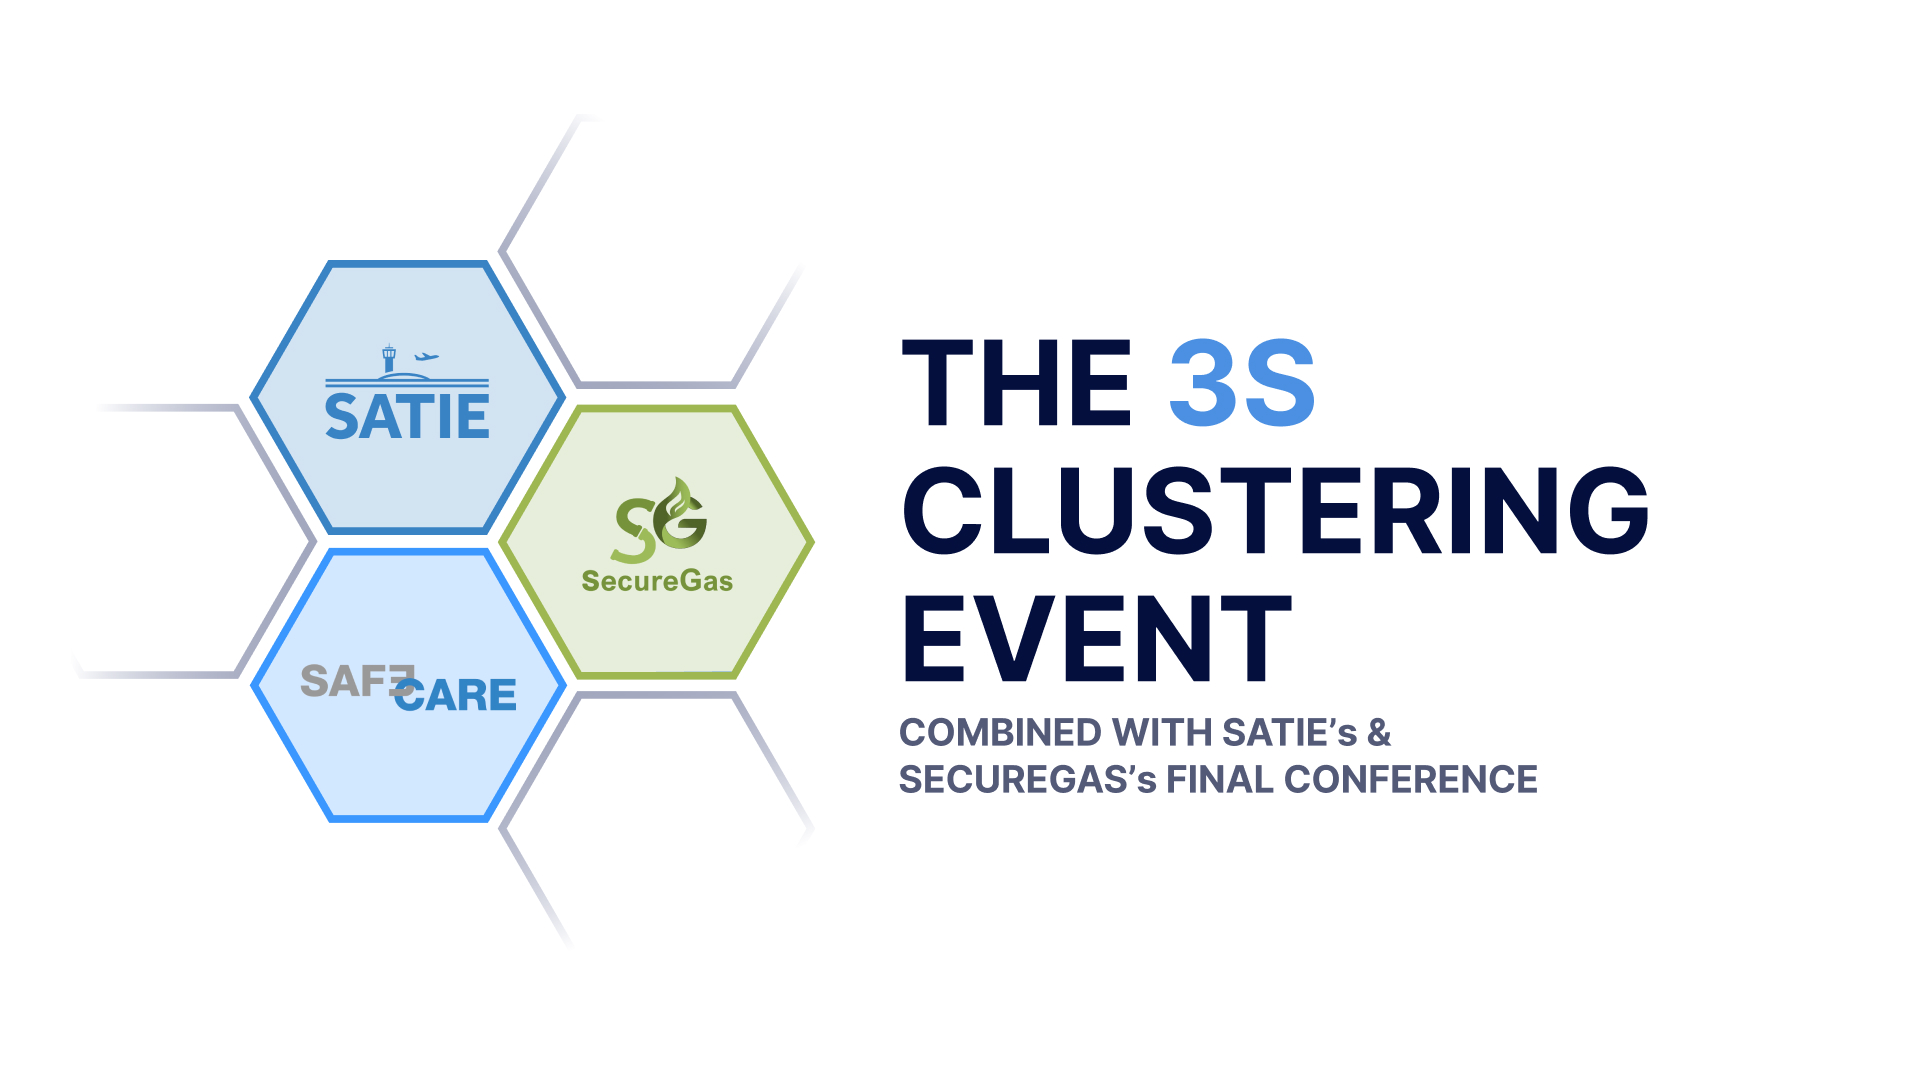 The 3S Clustering Event